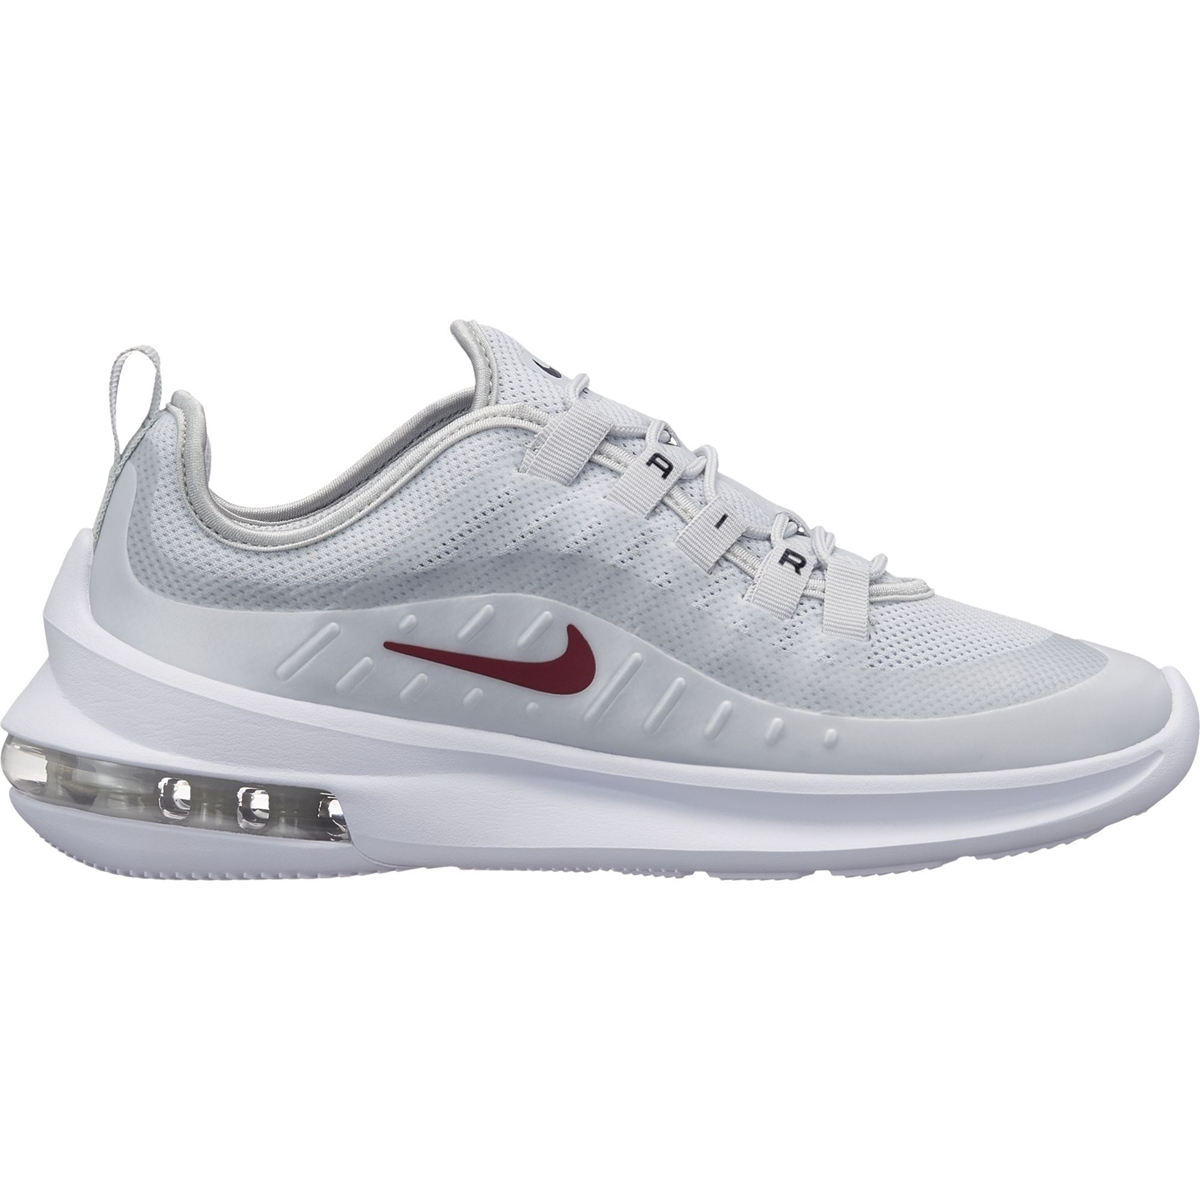 separation shoes a957a ba1e9 Bilde av Nike WMNS AIR MAX AXIS AA2168-003